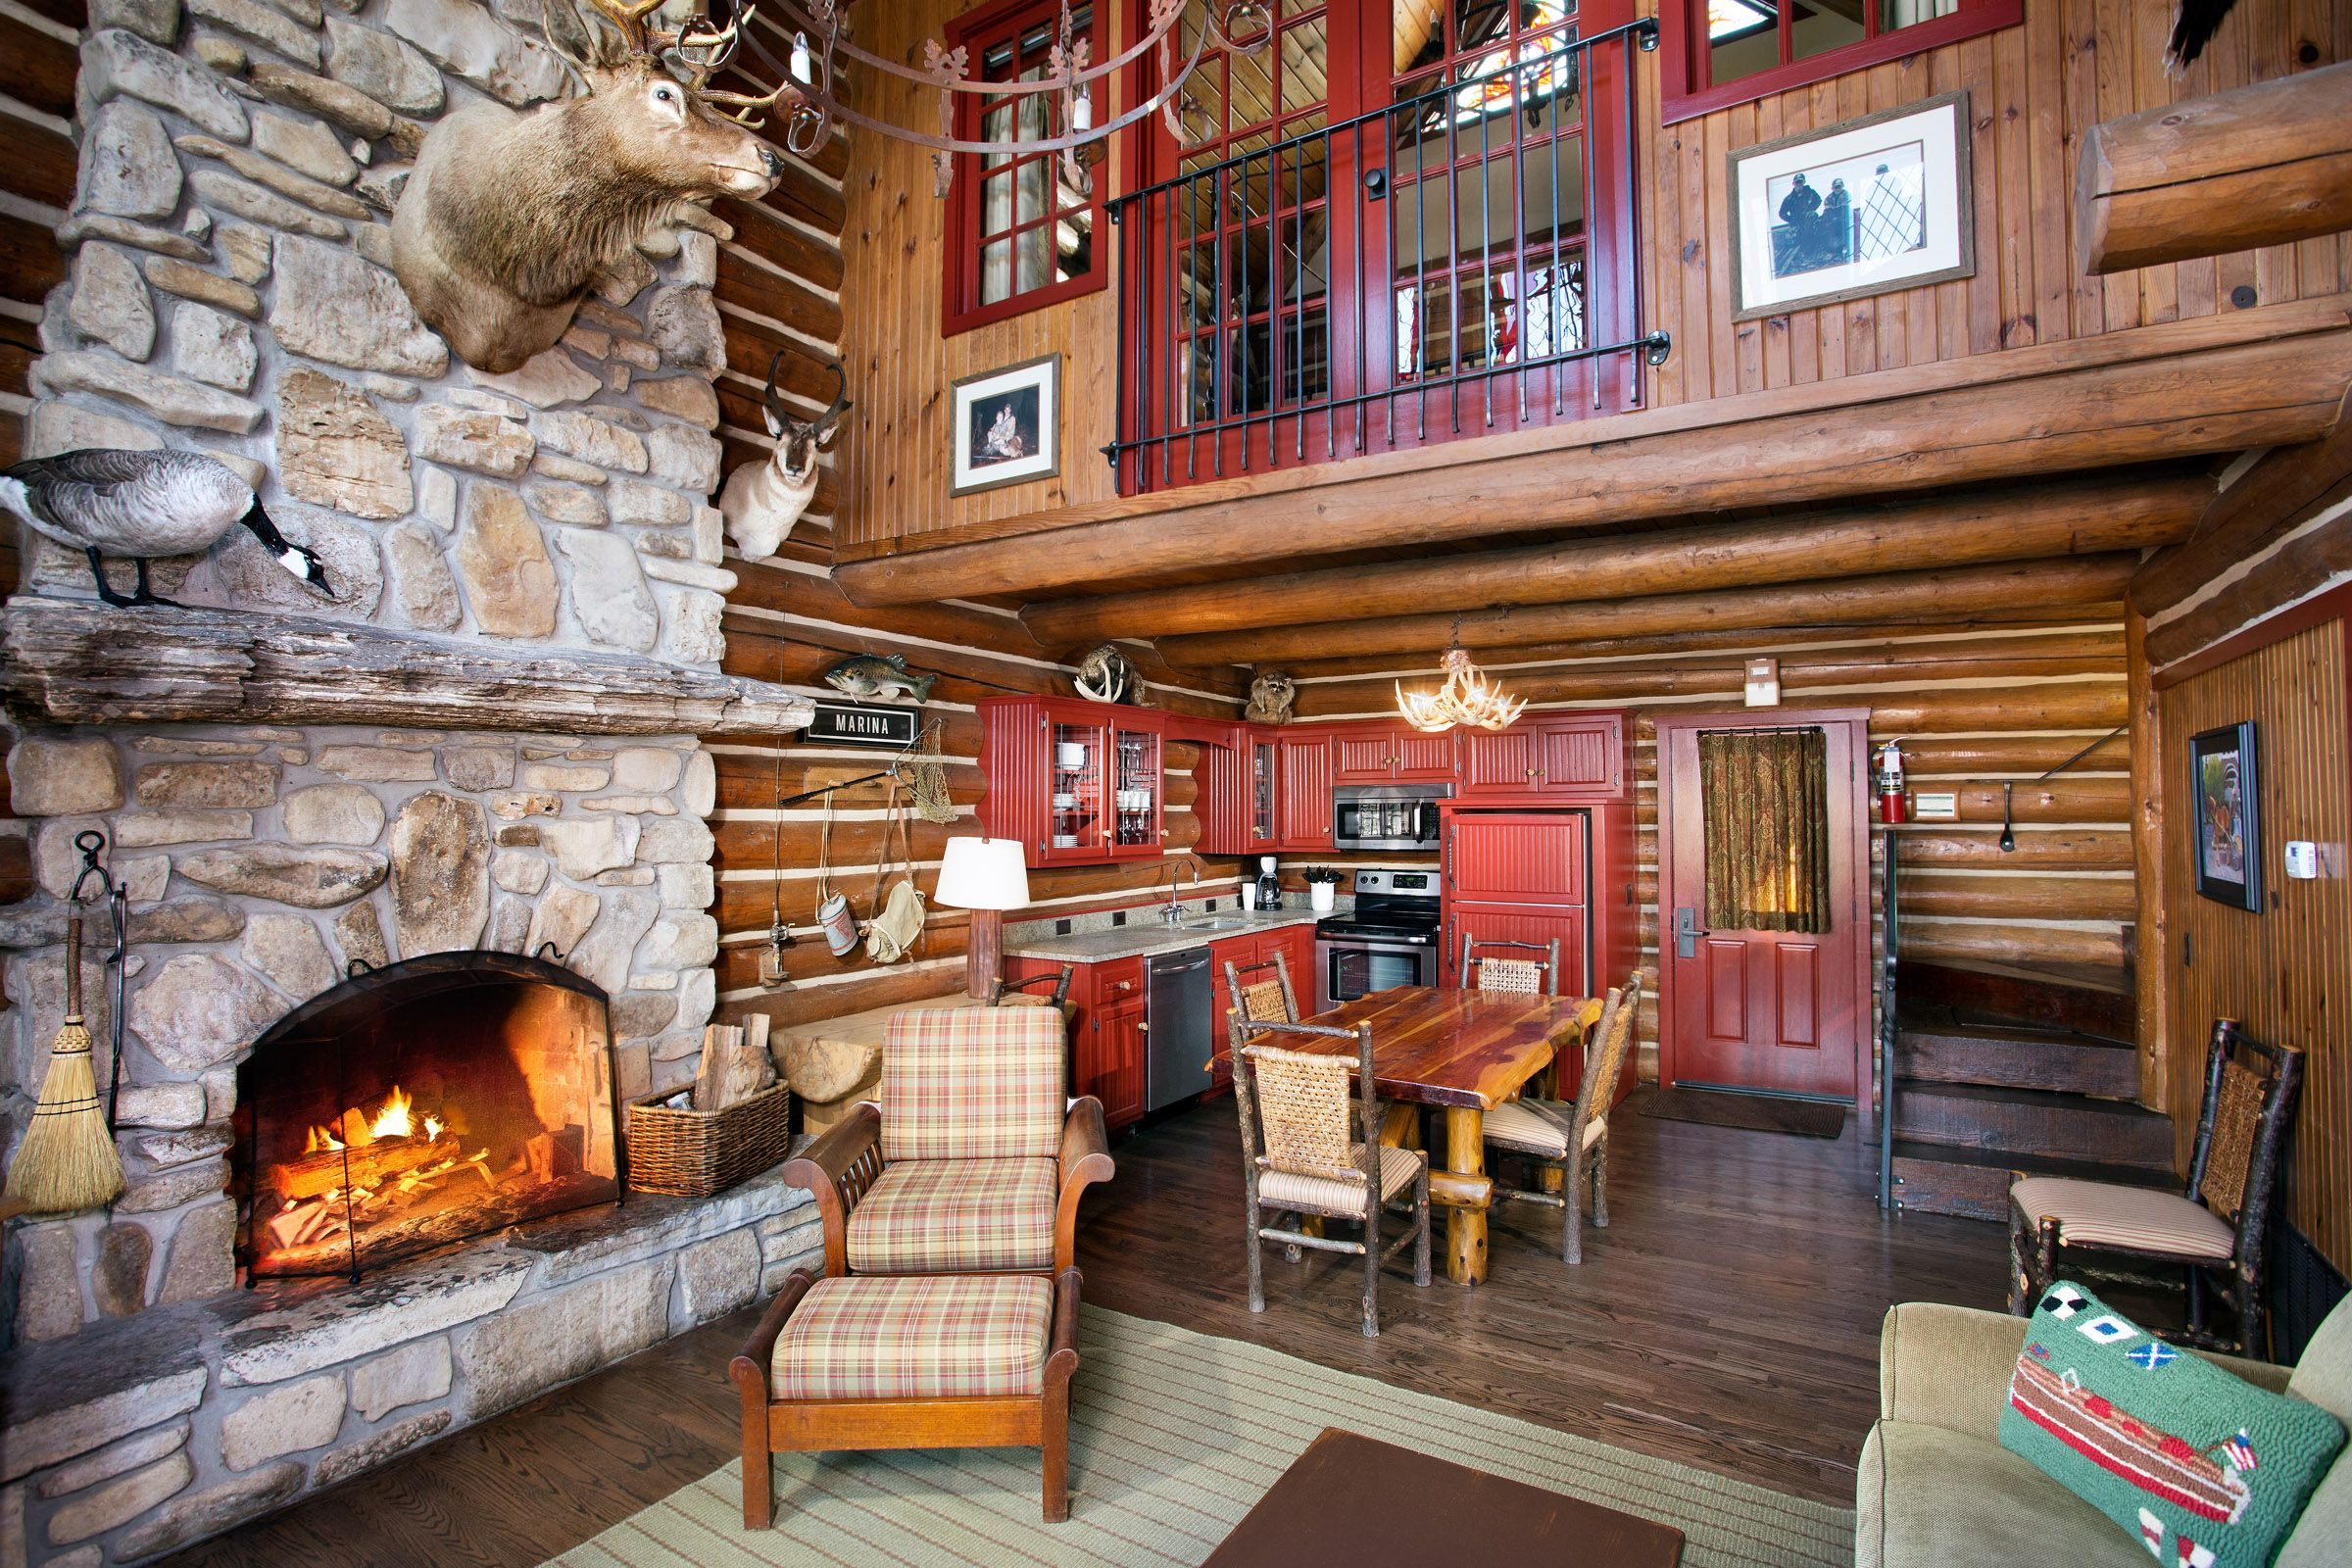 Superb Private Two Bedroom Cabin With Loft Branson Missouri Download Free Architecture Designs Sospemadebymaigaardcom